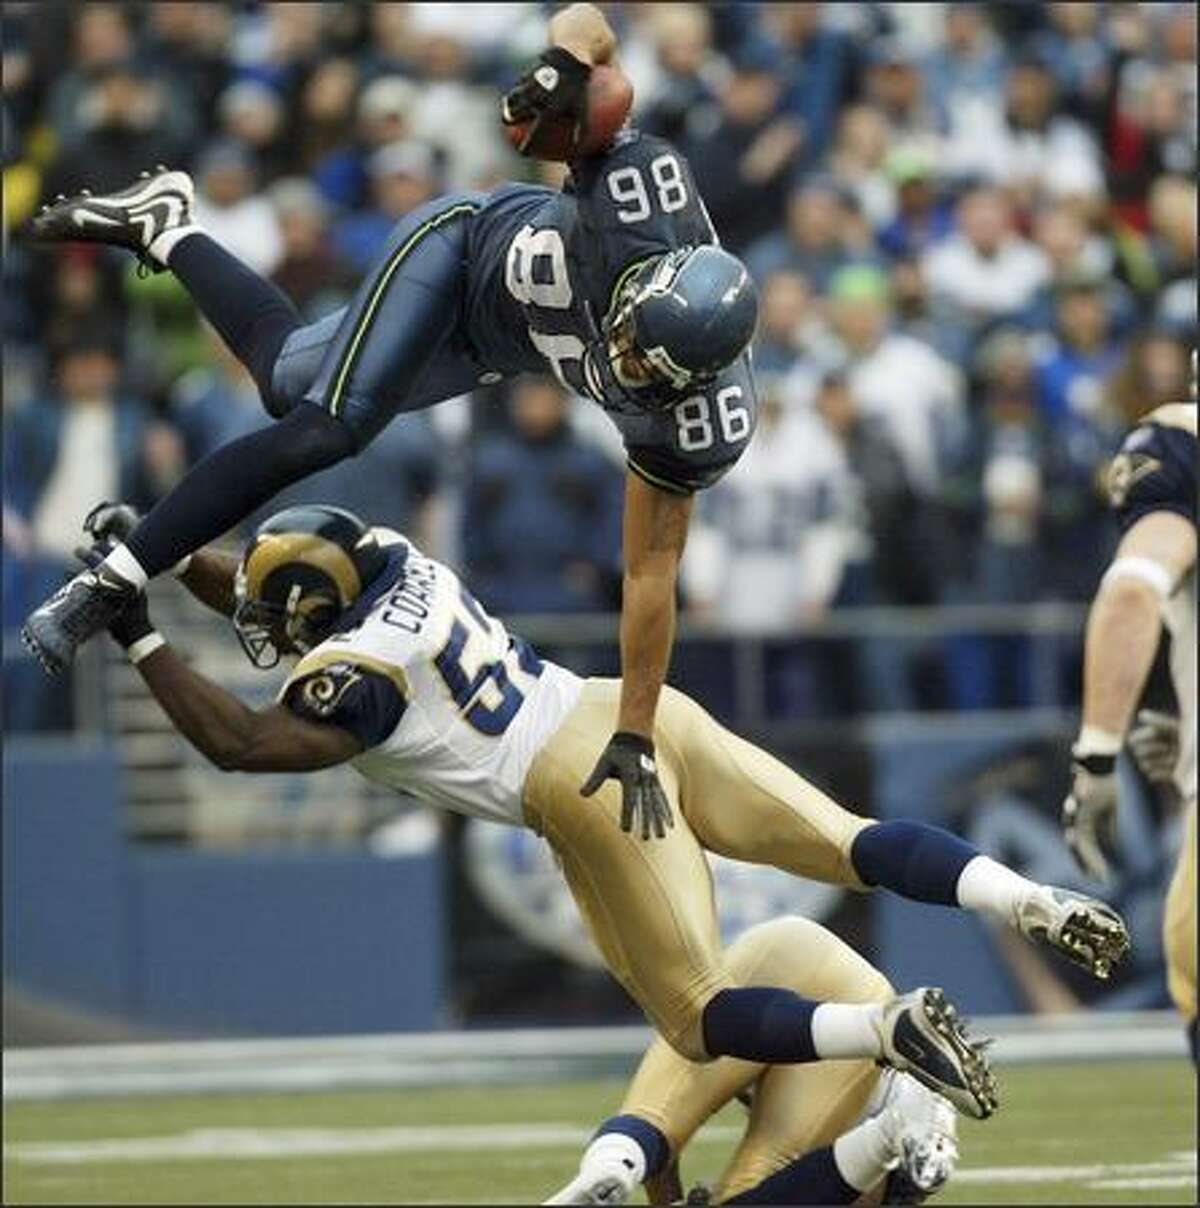 Seattle Seahawks' Jerramy Stevens leaps over St. Louis Rams Dexter Coakley during the second quarter of last Sunday's game at Qwest Field. Seattle won 31-16.